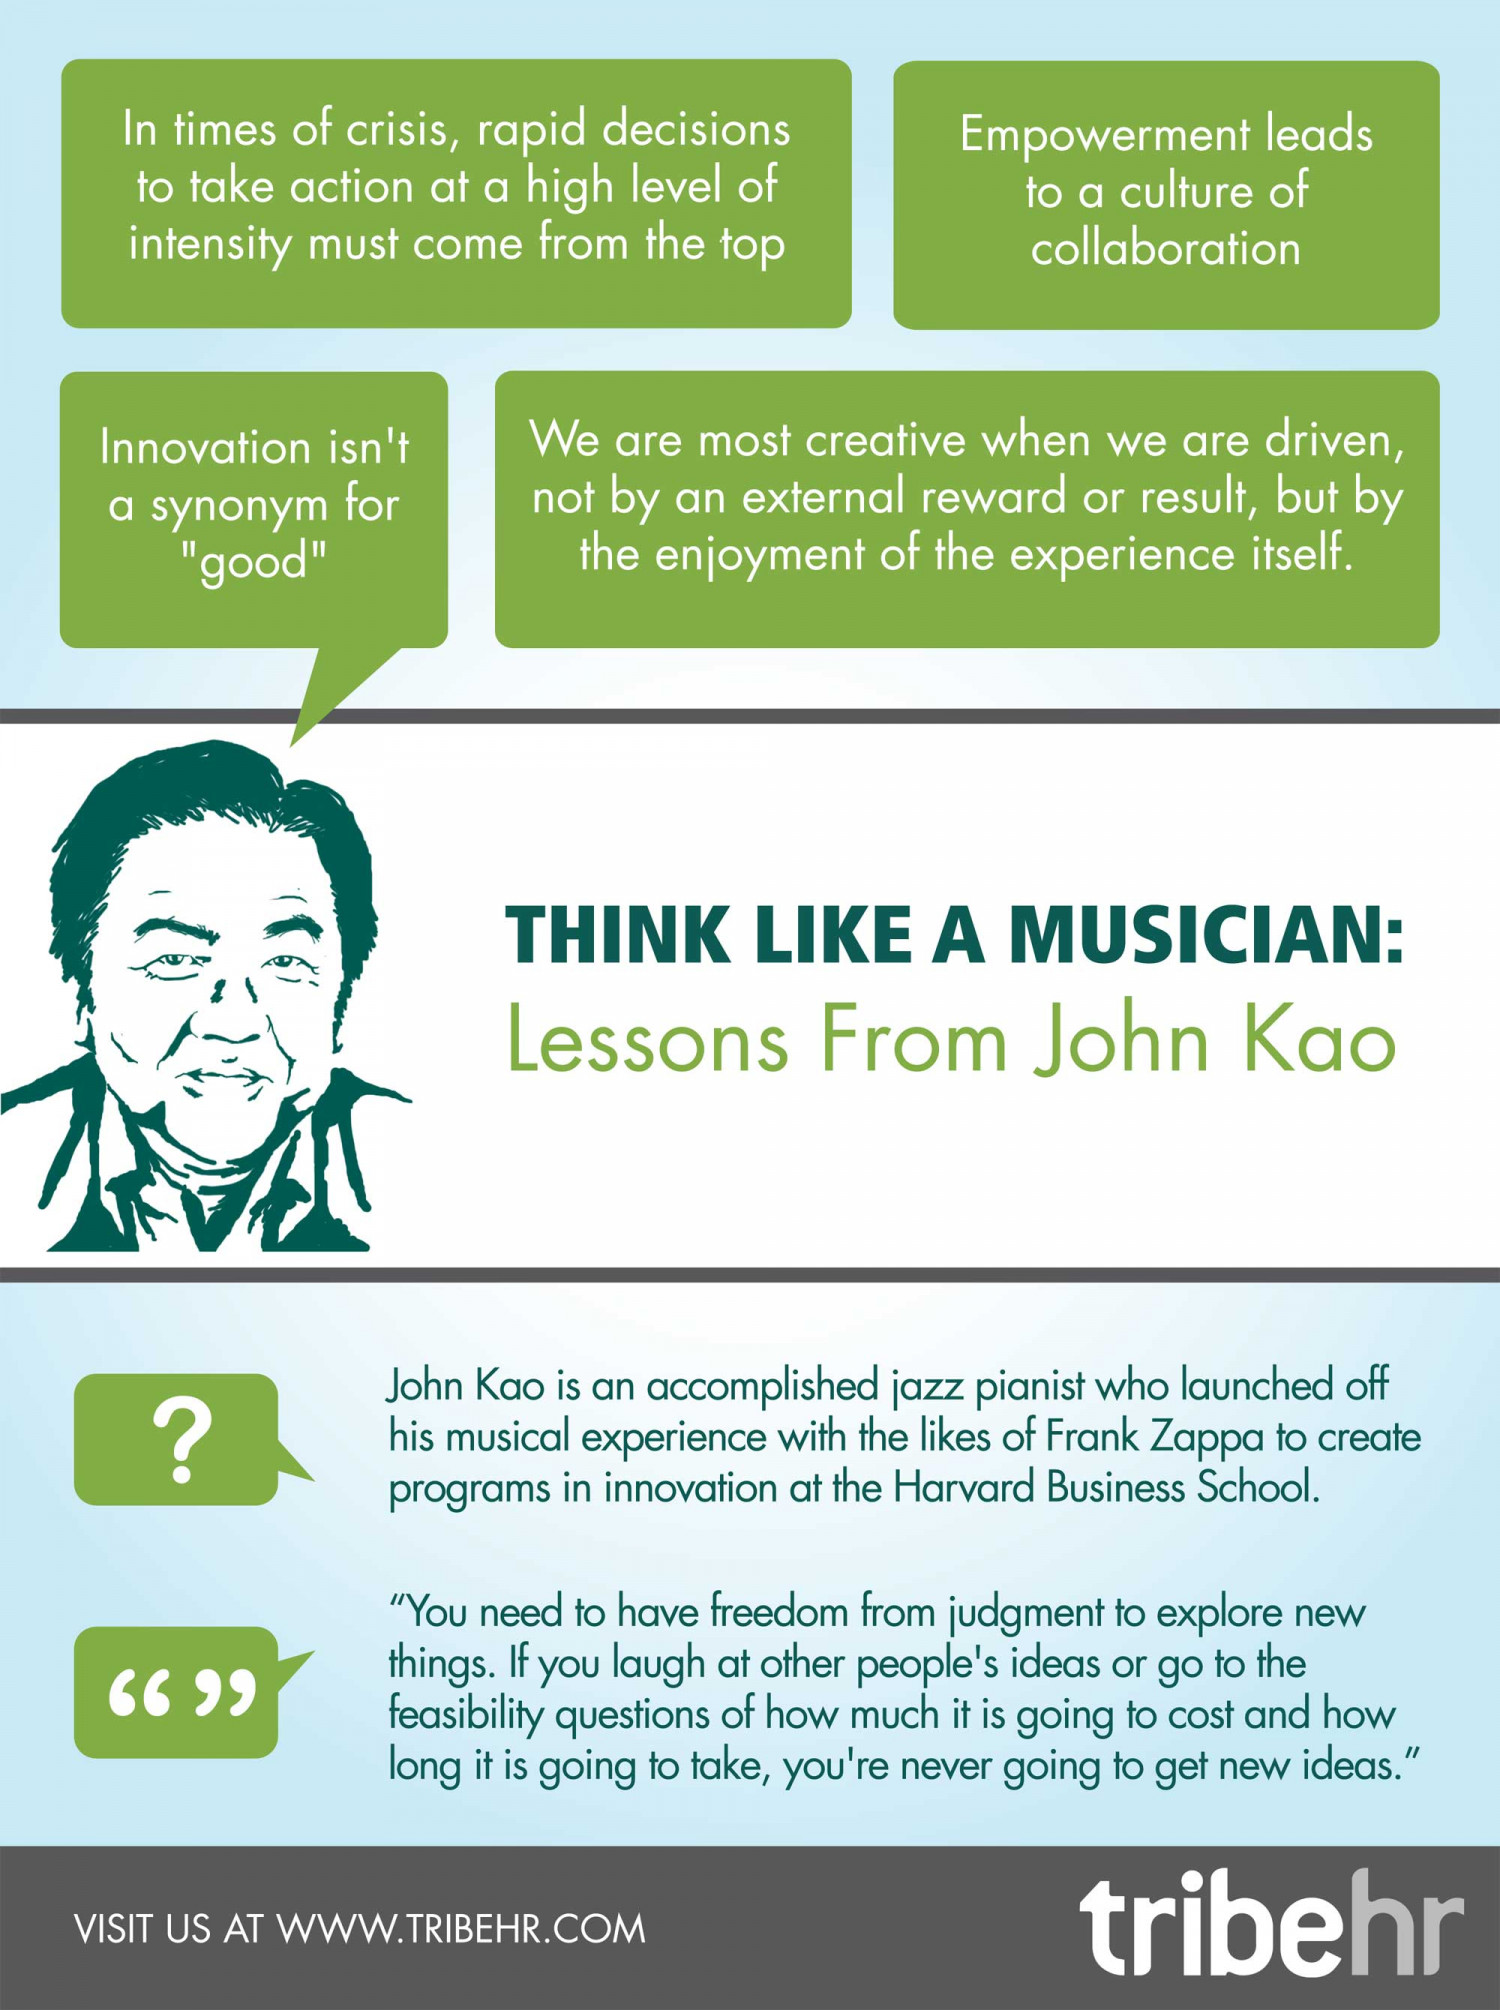 Think Like a Musician: HR Lessons from John Kao Infographic